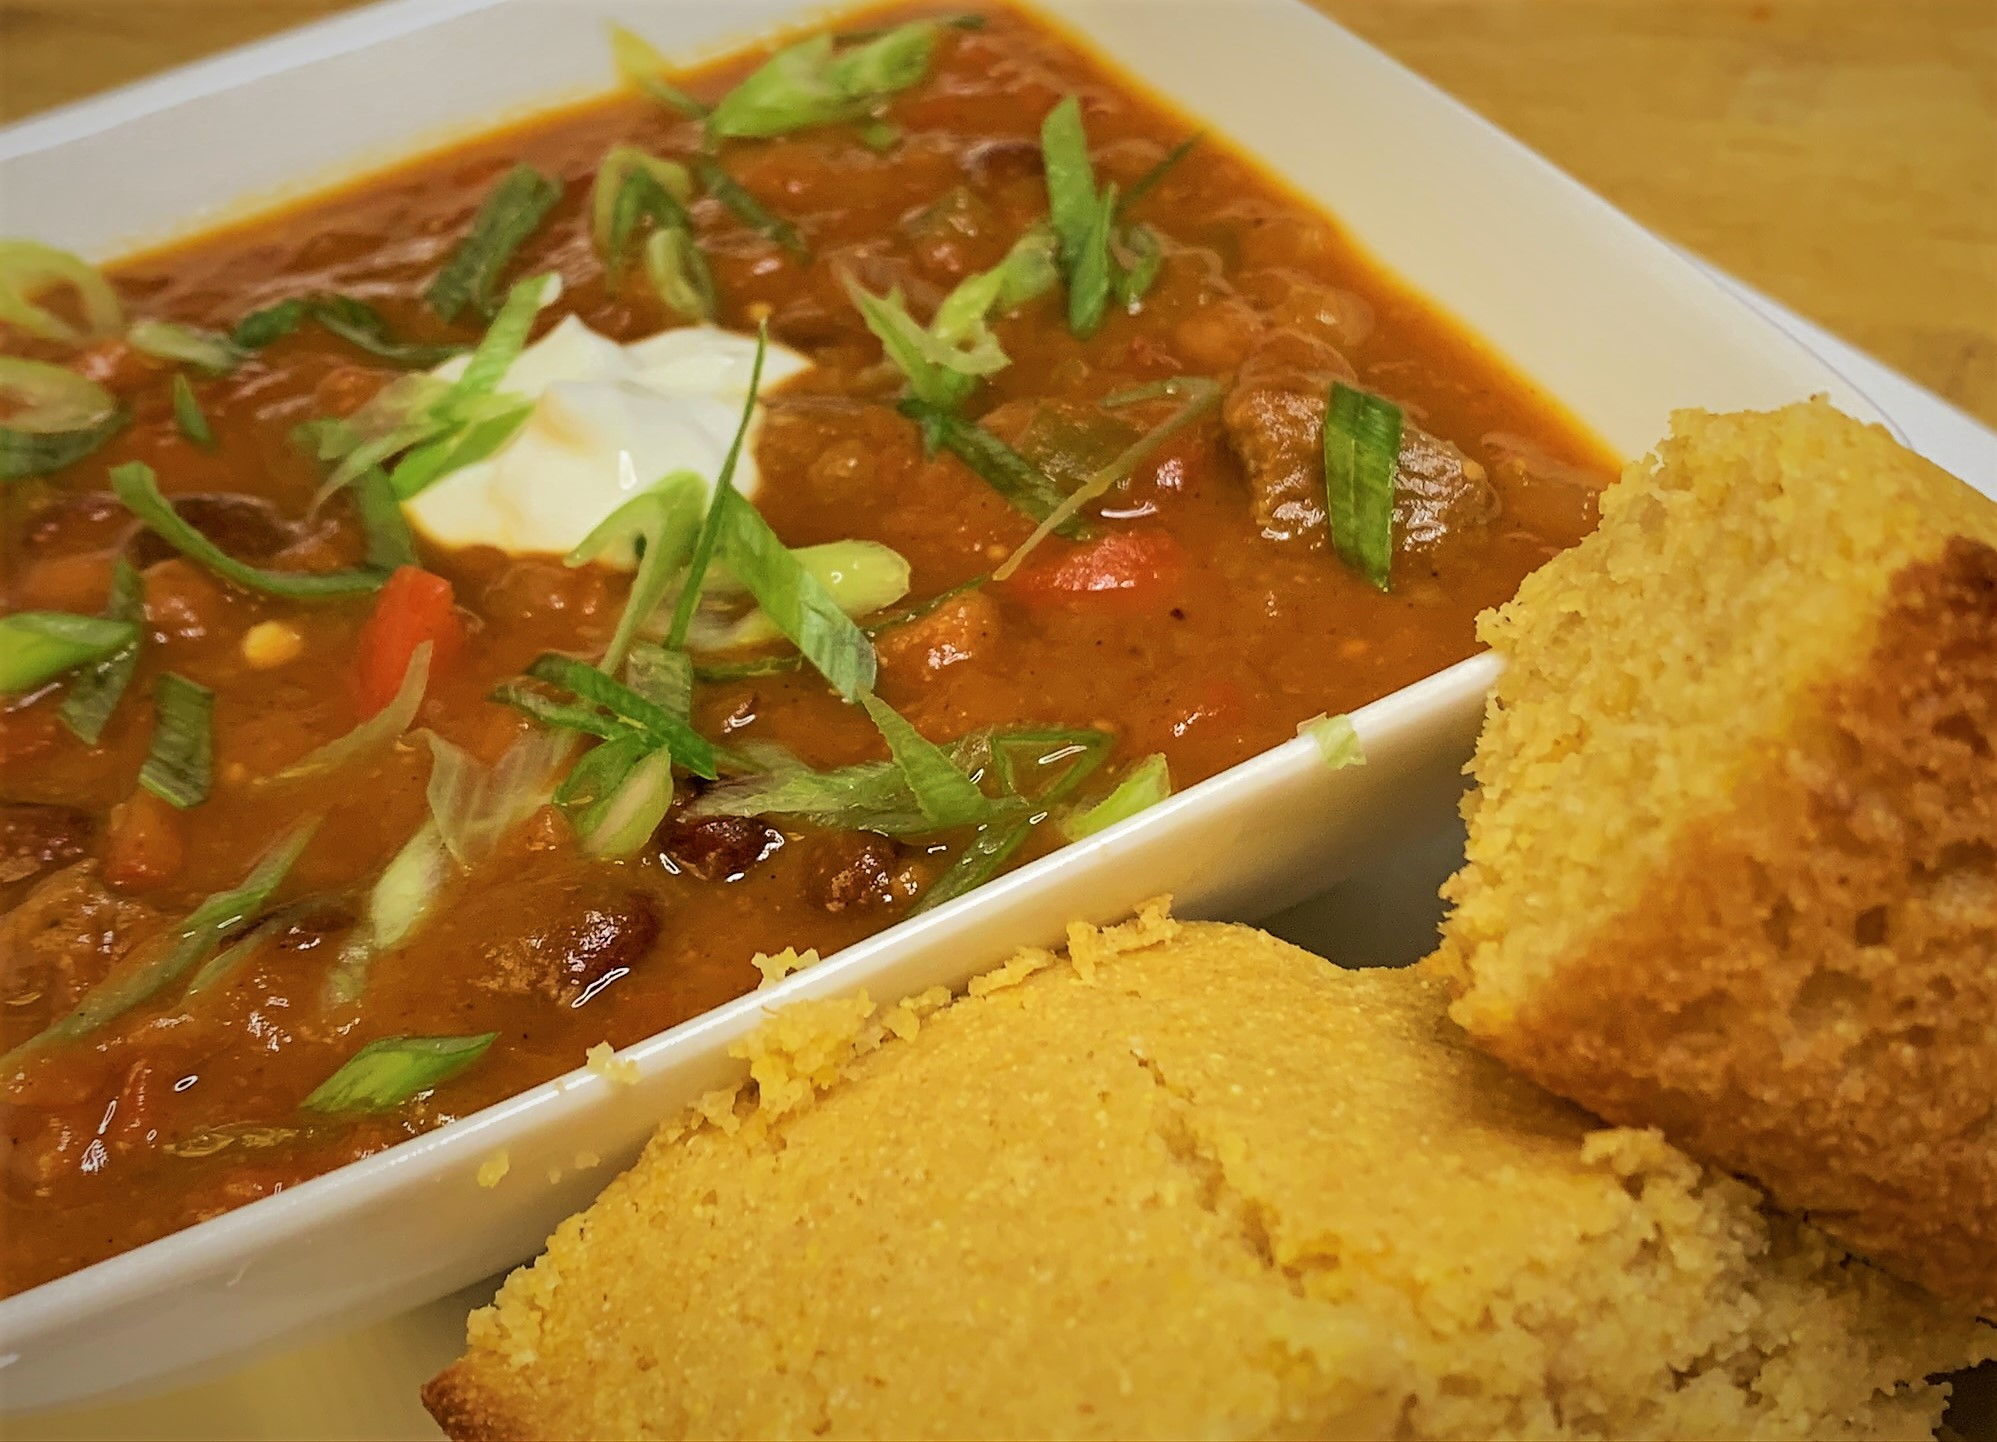 Our plated Pumpkin Chili Recipe with the famous Corn Bread from the Hoop Dee Doo Review